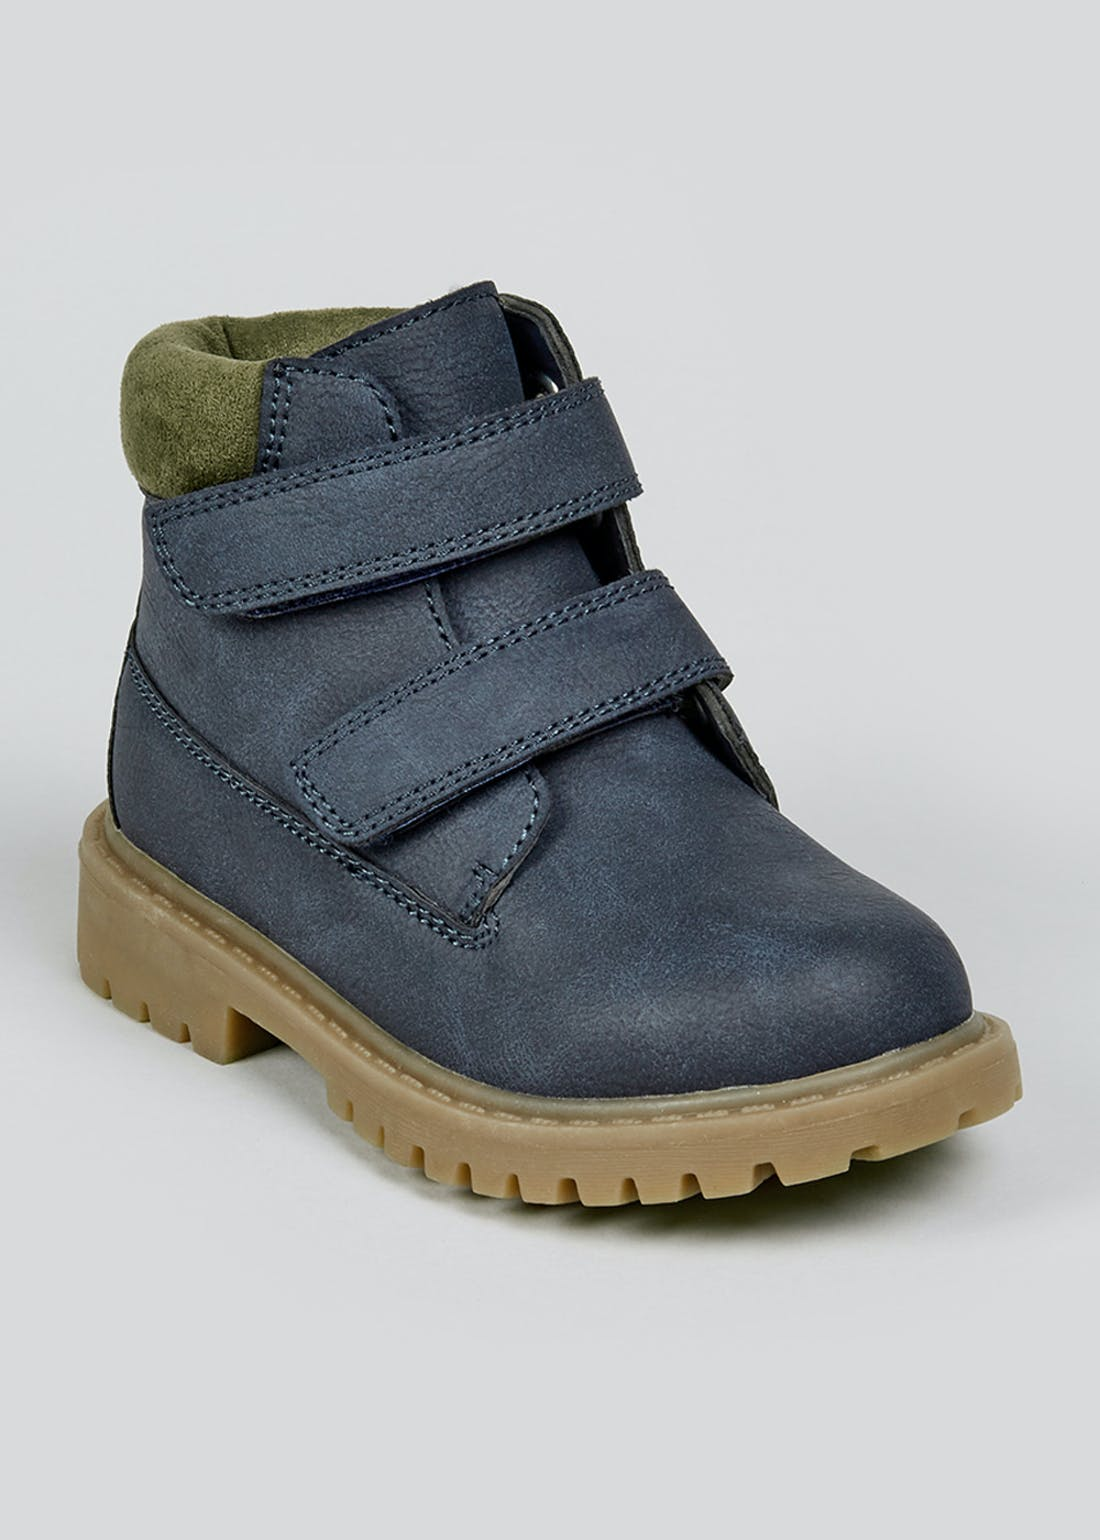 Kids Navy Hiker Boots (Younger 4-12)